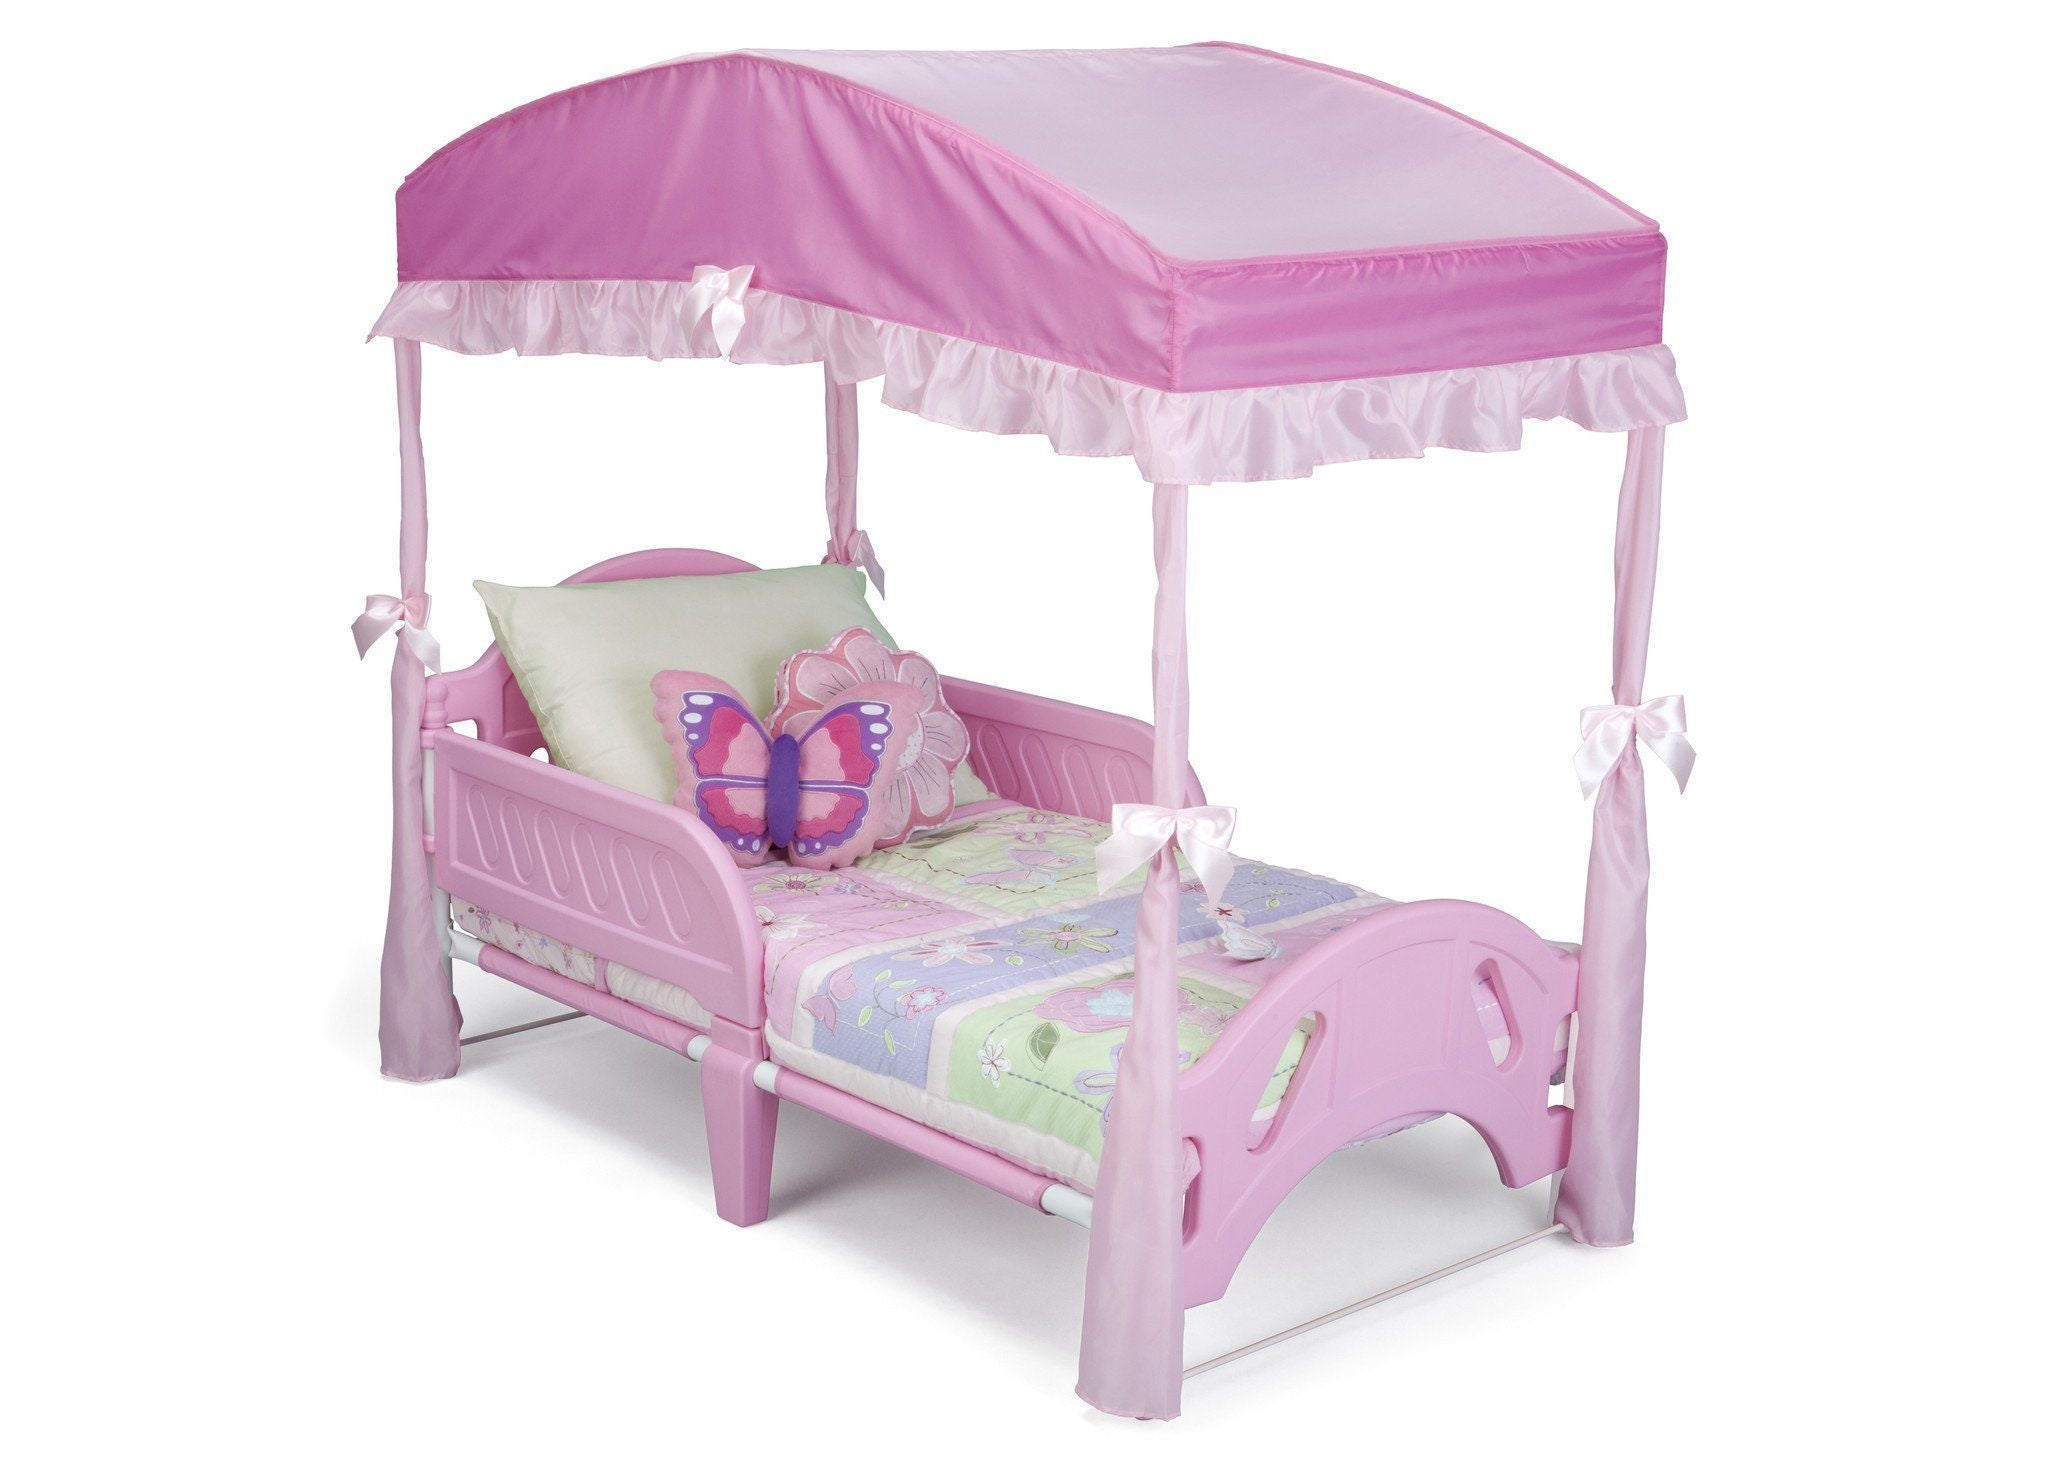 Delta Children Toddler Bed Canopy Pink (660) Style 2 Right Side View b2b